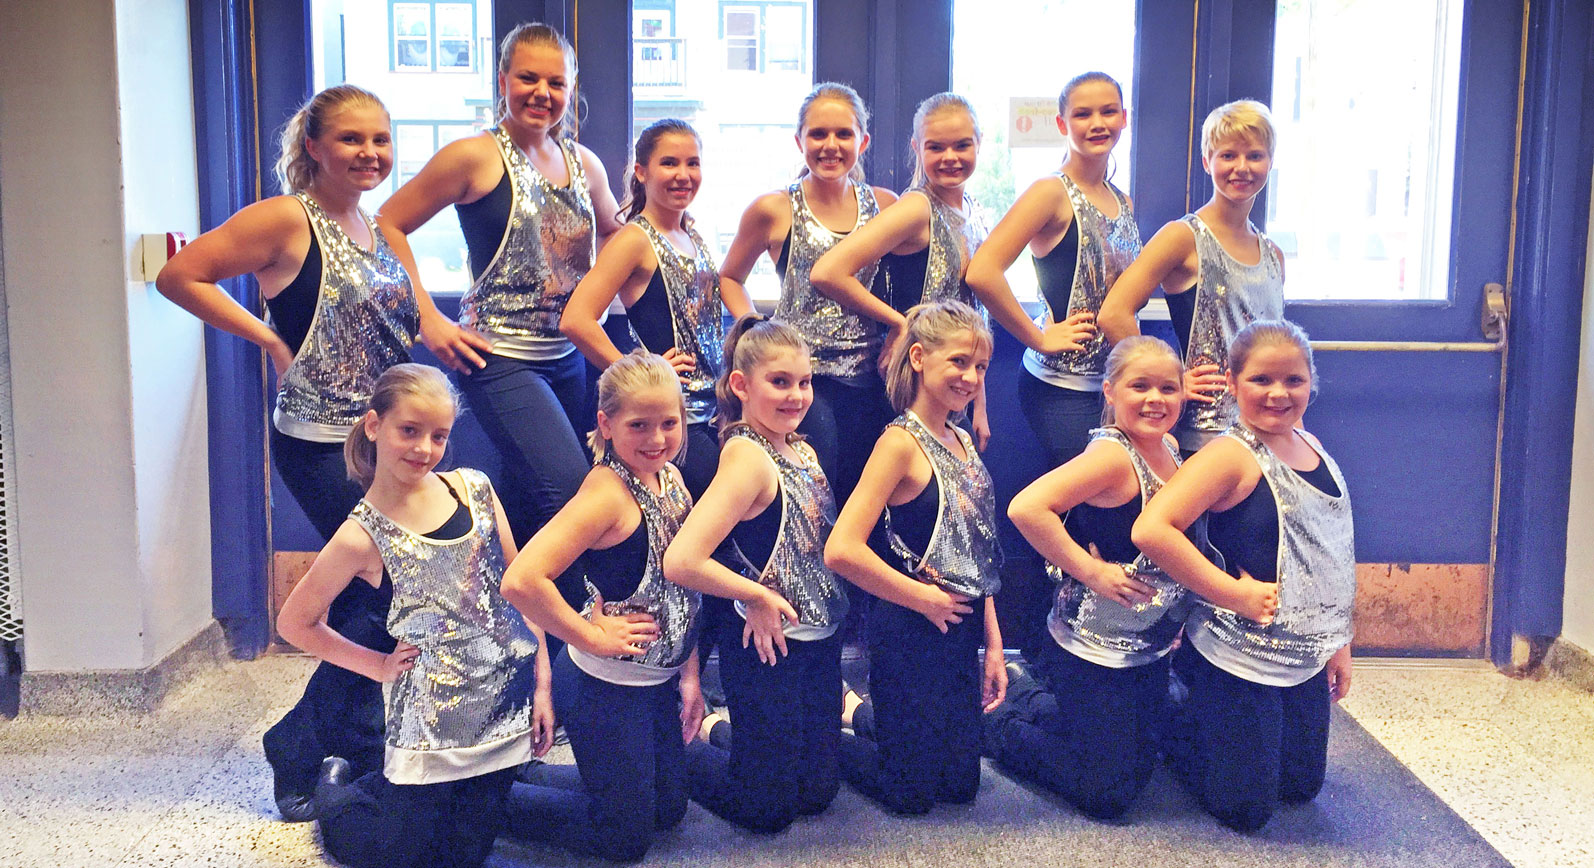 new attitudes dance competition company competitive dance classes marquette michigan